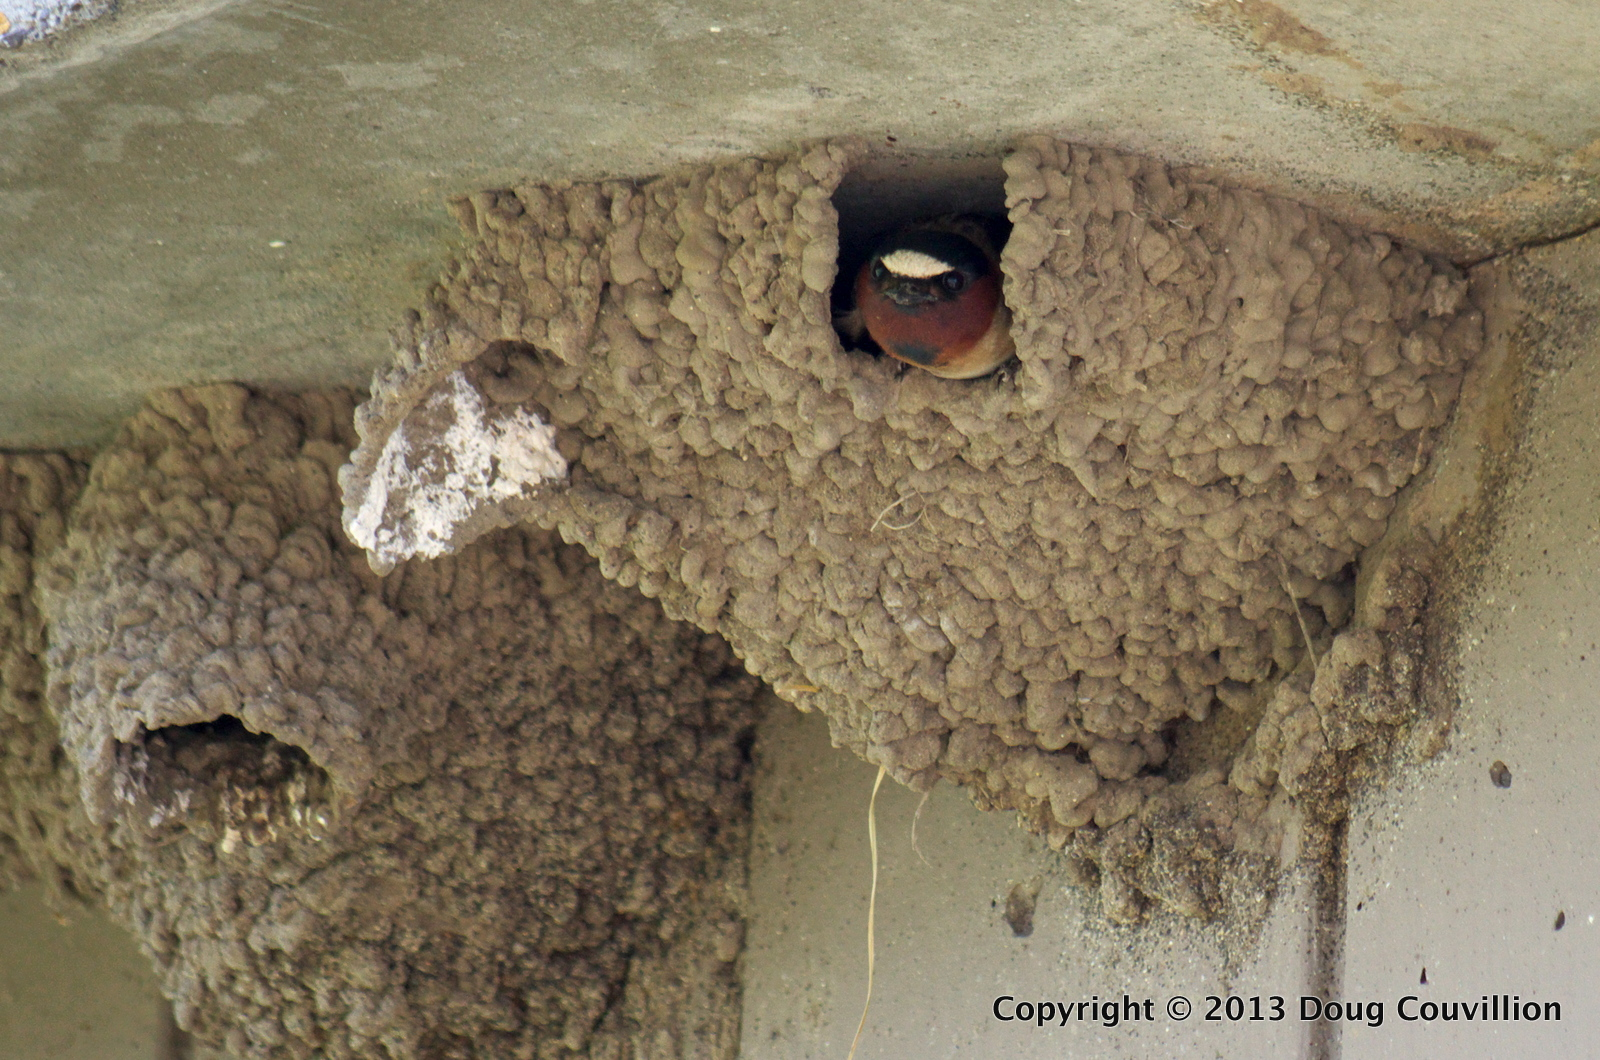 photograph of a cliff swallow in its nest